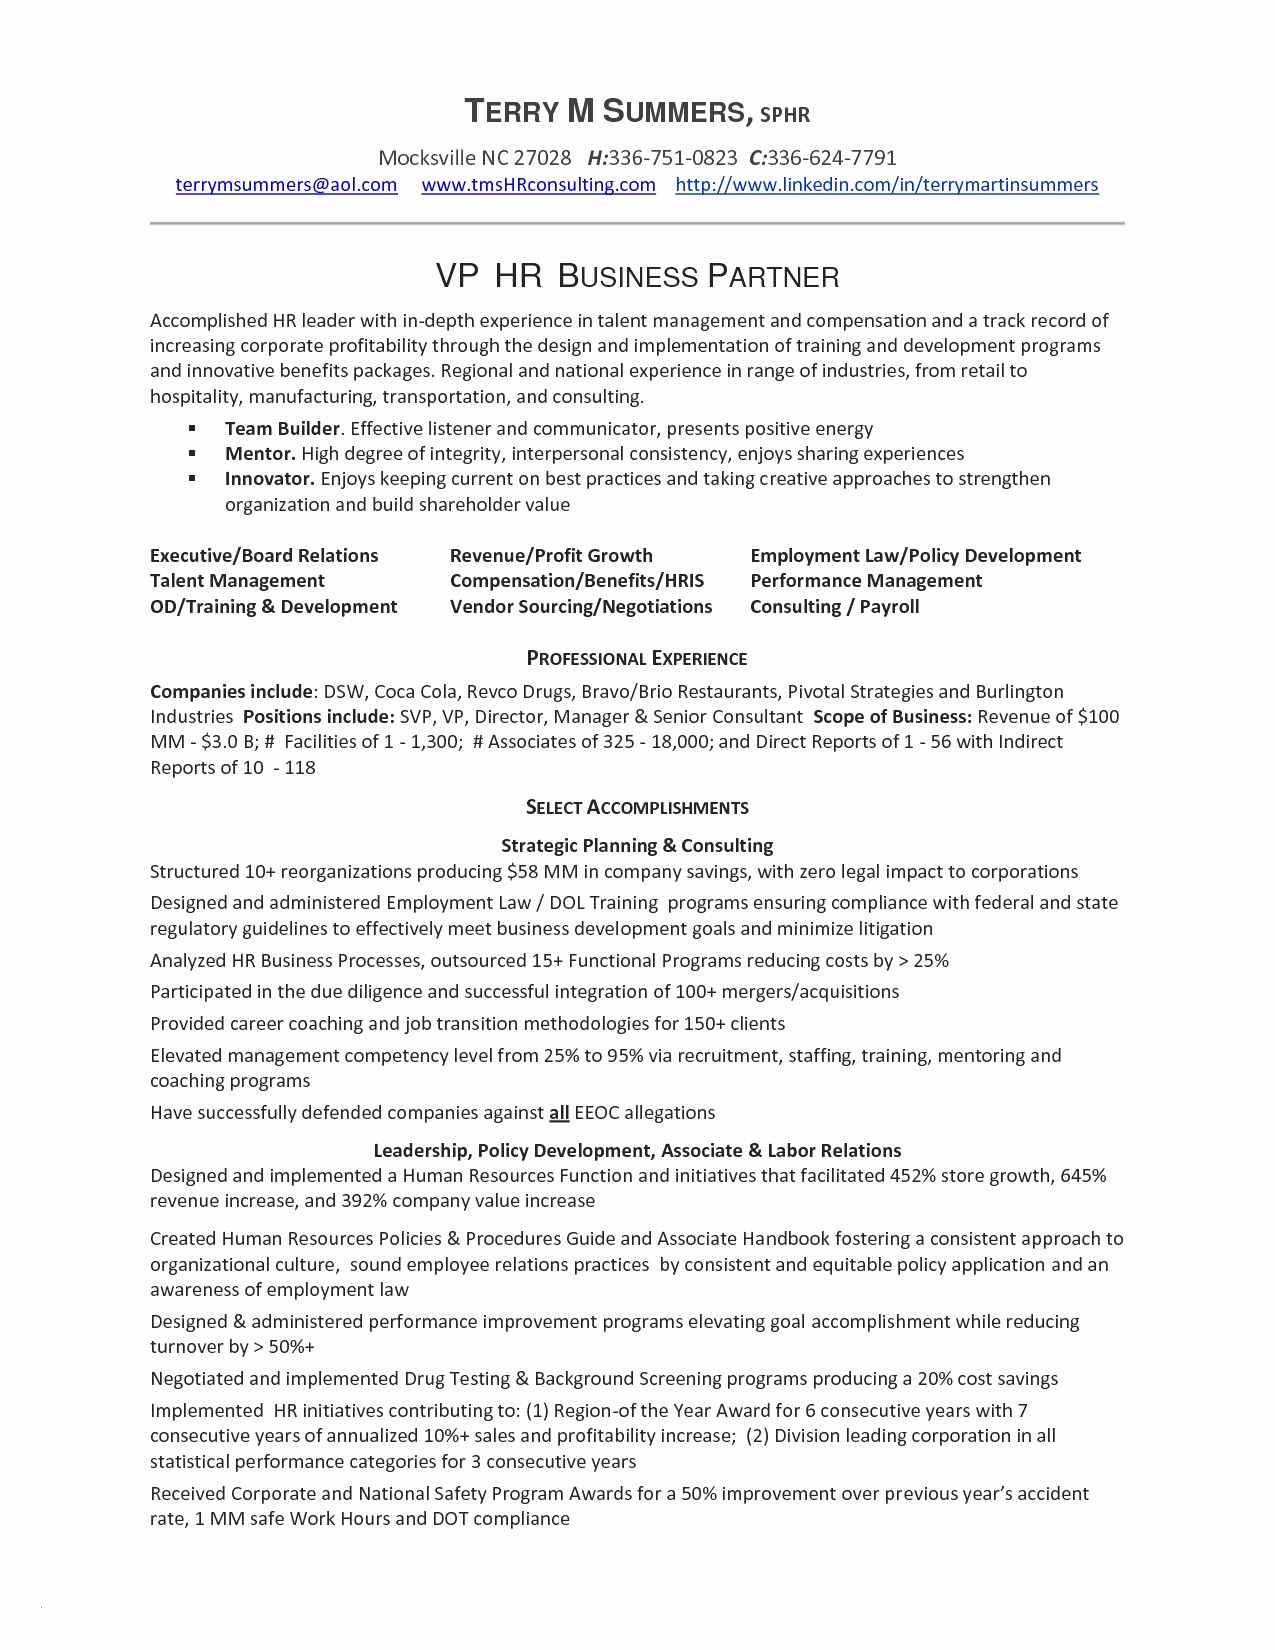 data analyst resume template Collection-Data Analyst Resume Template Best Senior Data Analyst Resume Sample Unique Hr Resume Sample Lovely 10-k